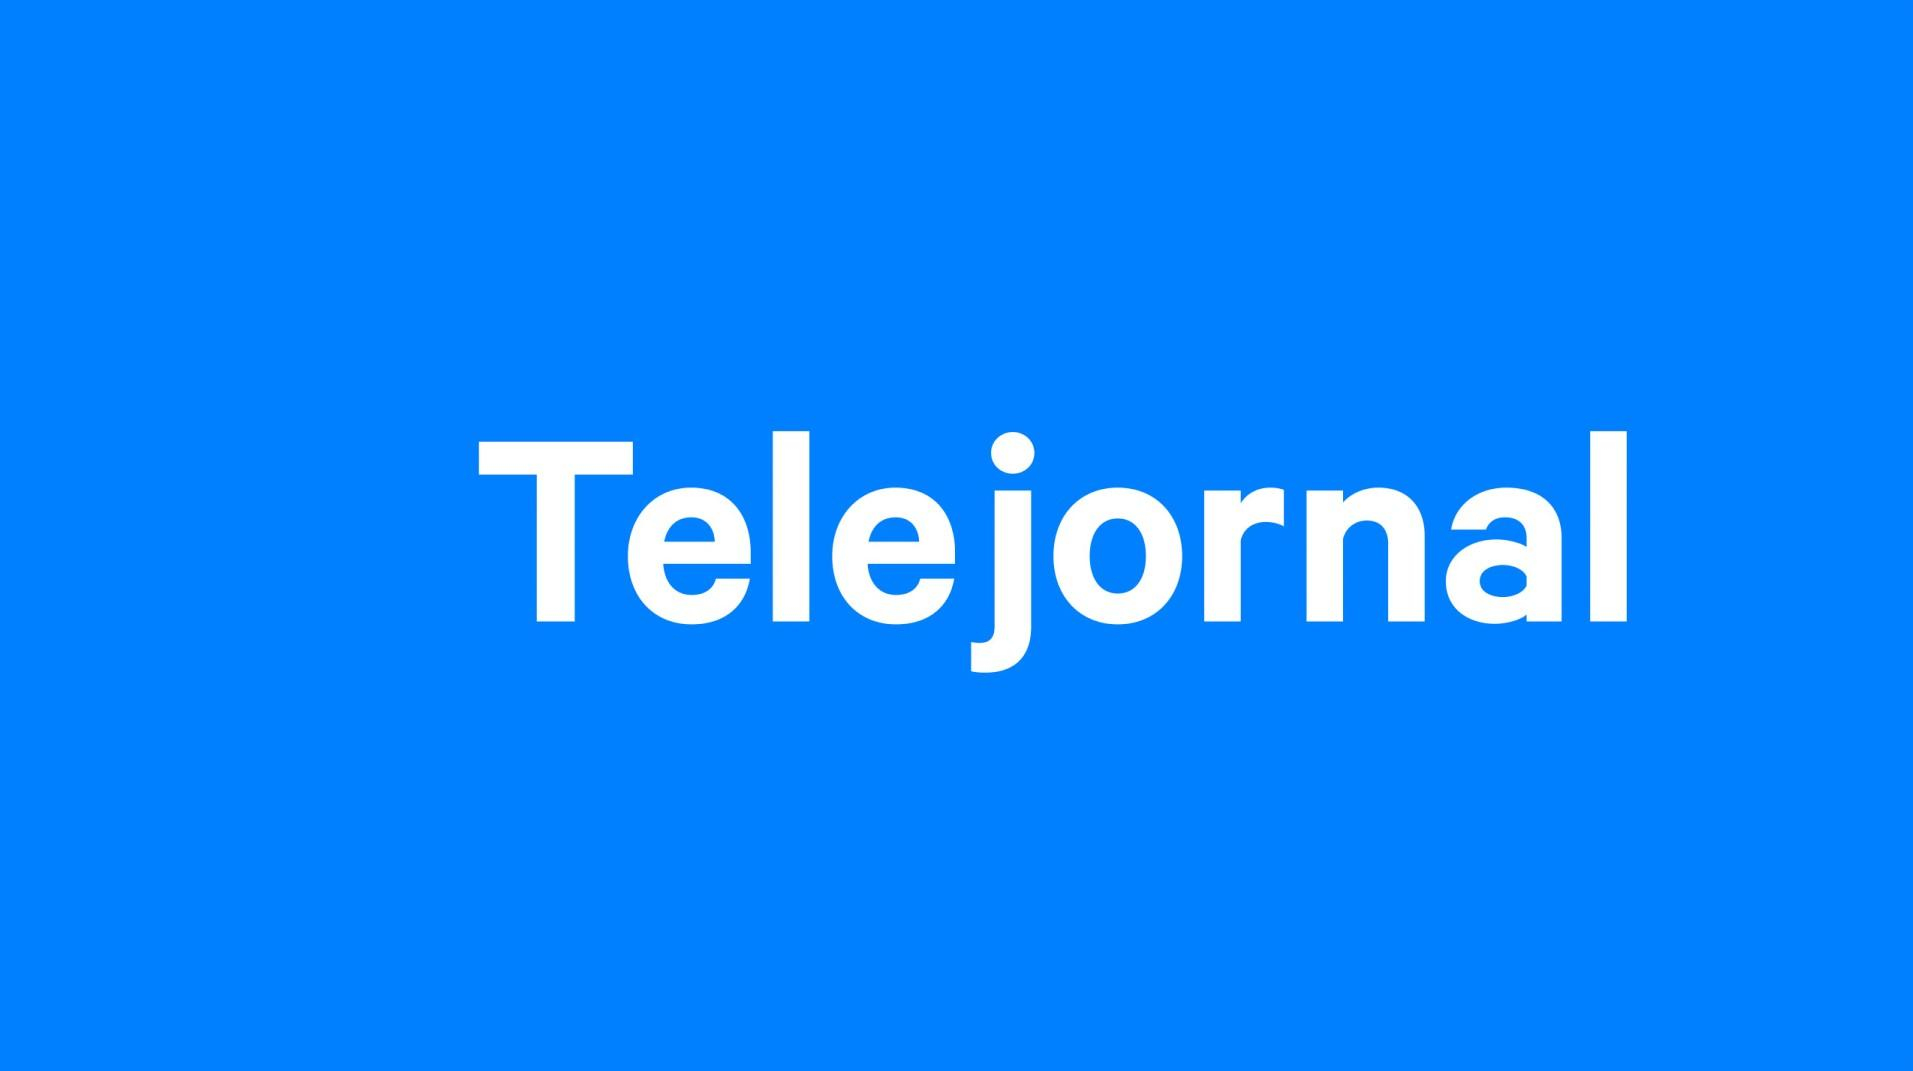 Telejornal - Temporada